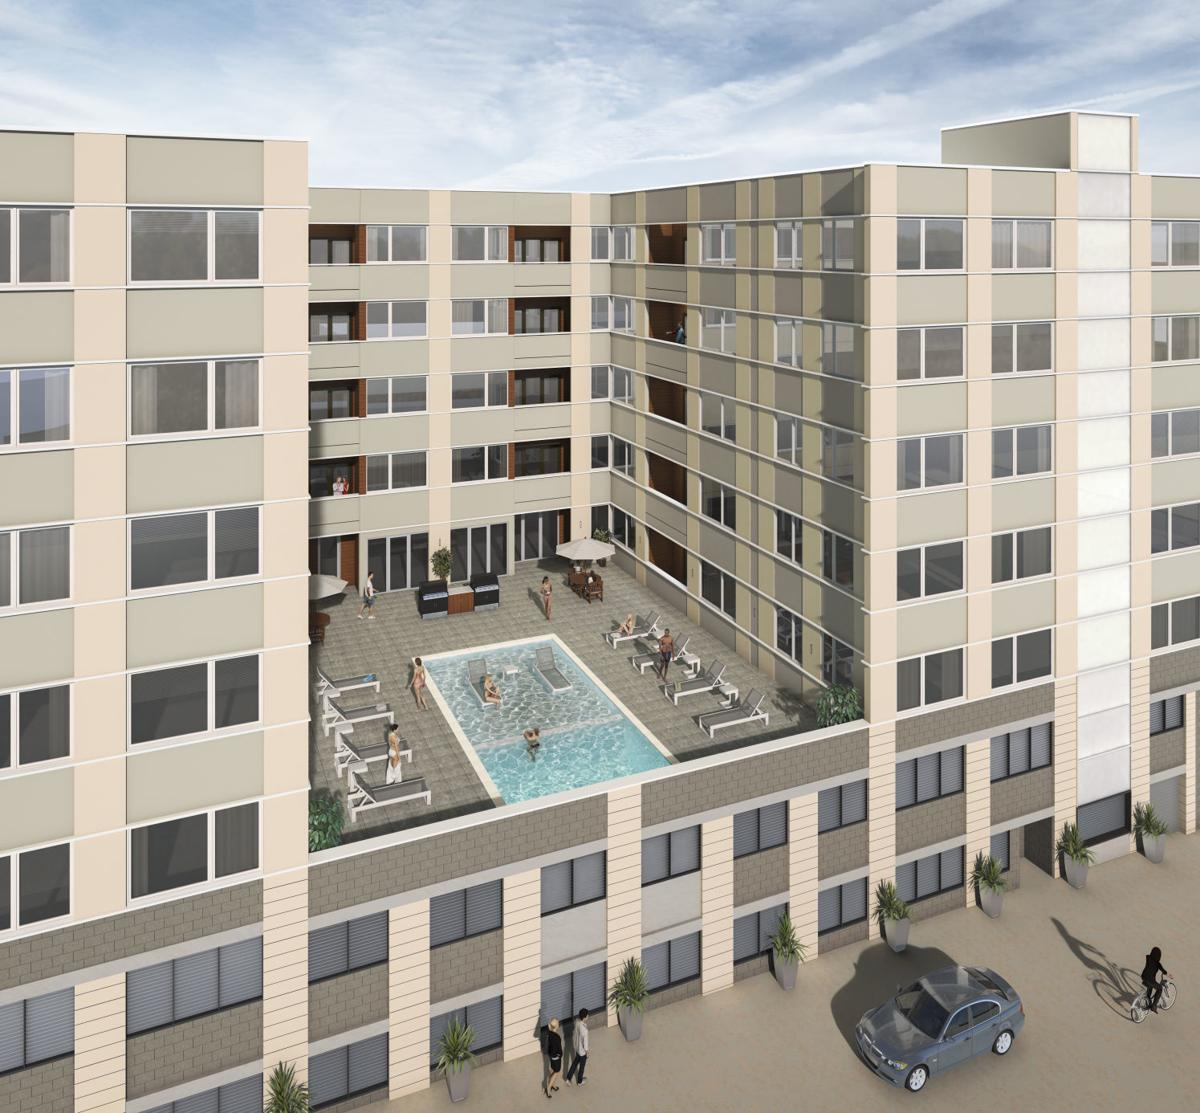 Apartments Local: Development Projects Underway: From Apartments In Scott's